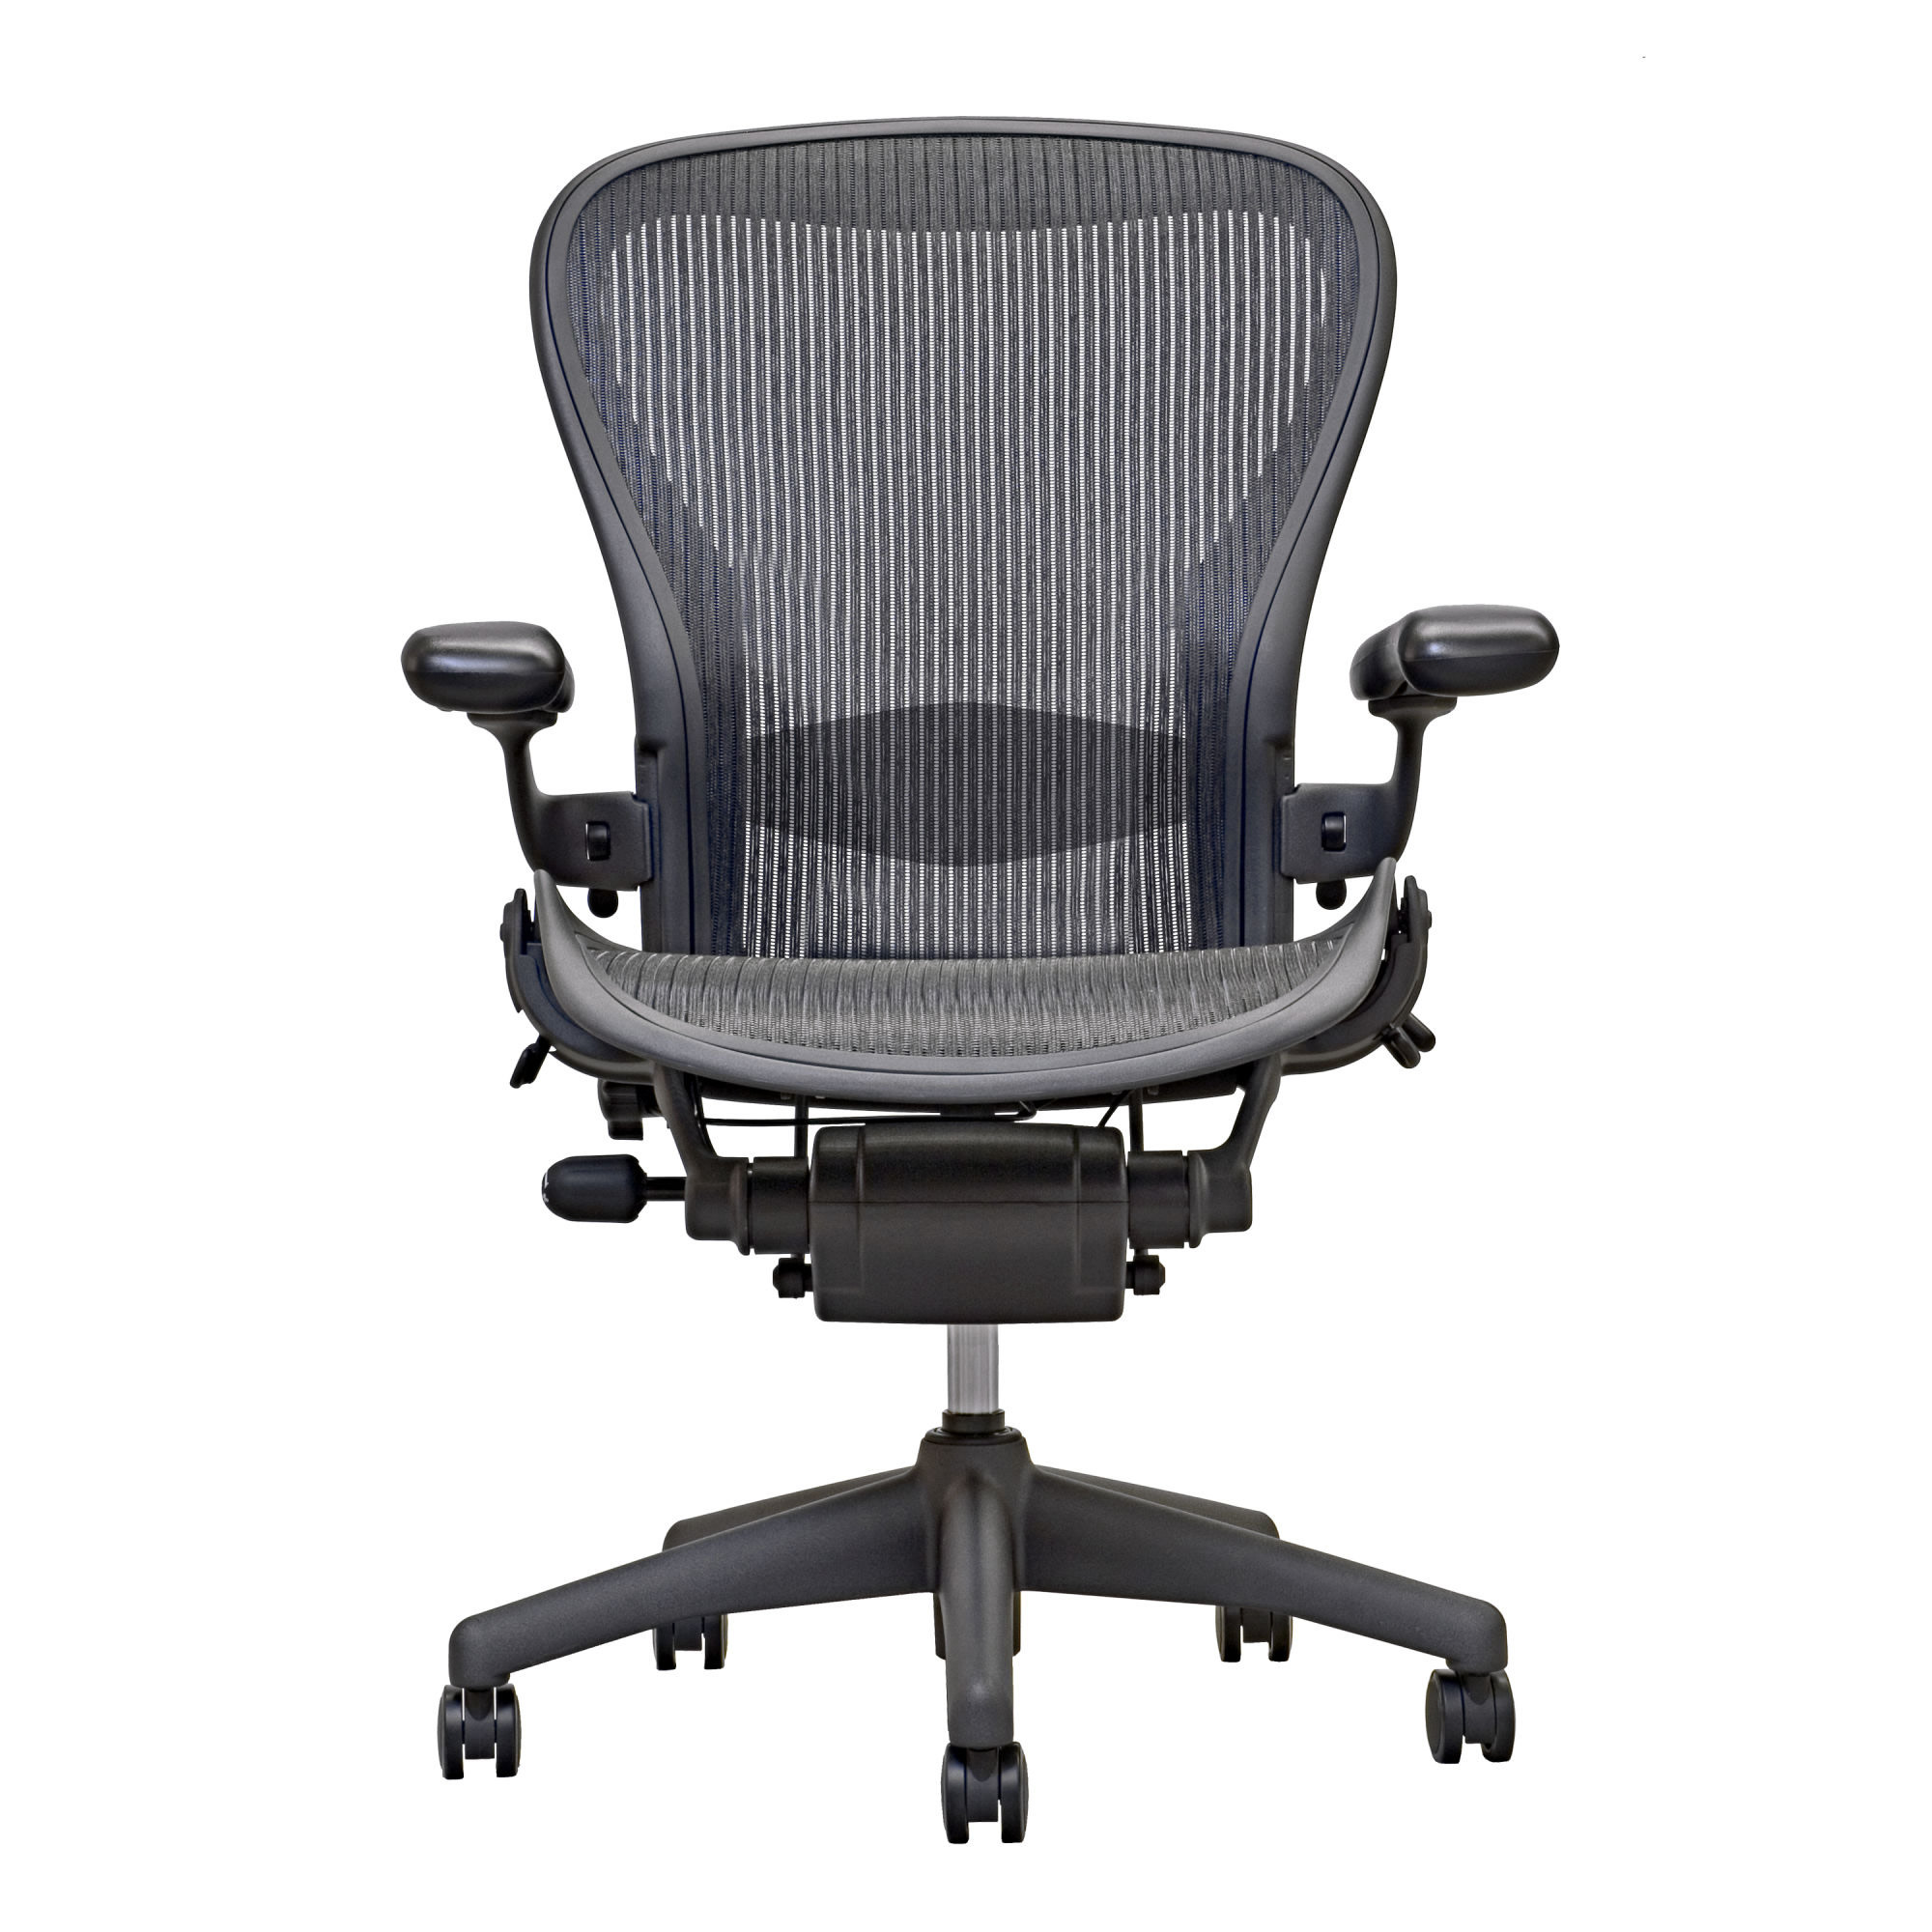 Aaron Chair Aeron Chair By Herman Miller Highly Adjustable Carbon